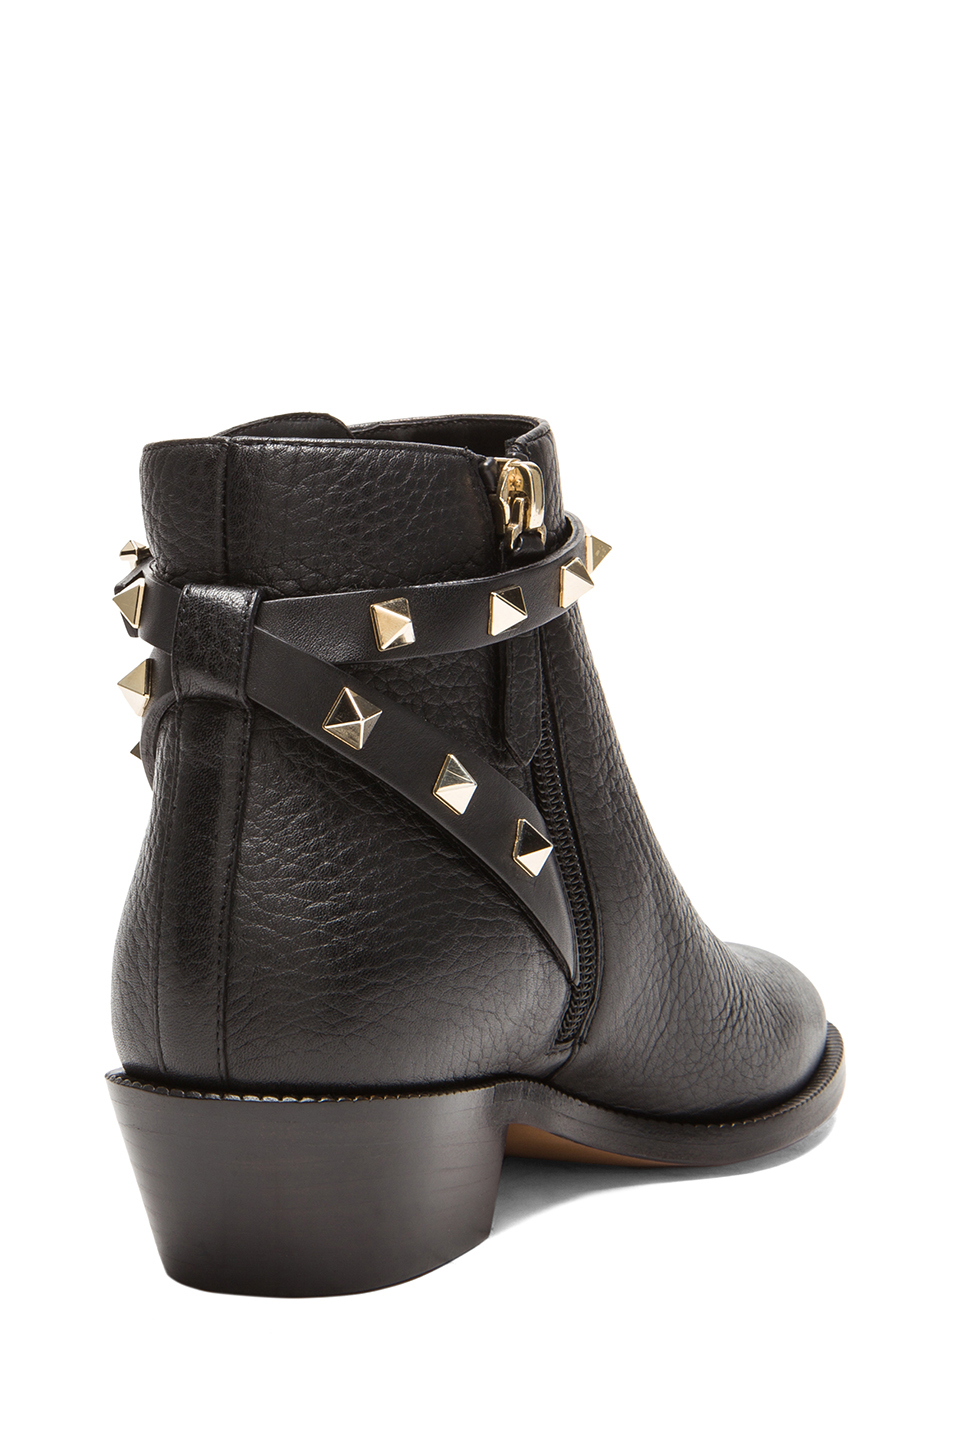 Find great deals on eBay for ankle boots. Shop with confidence.